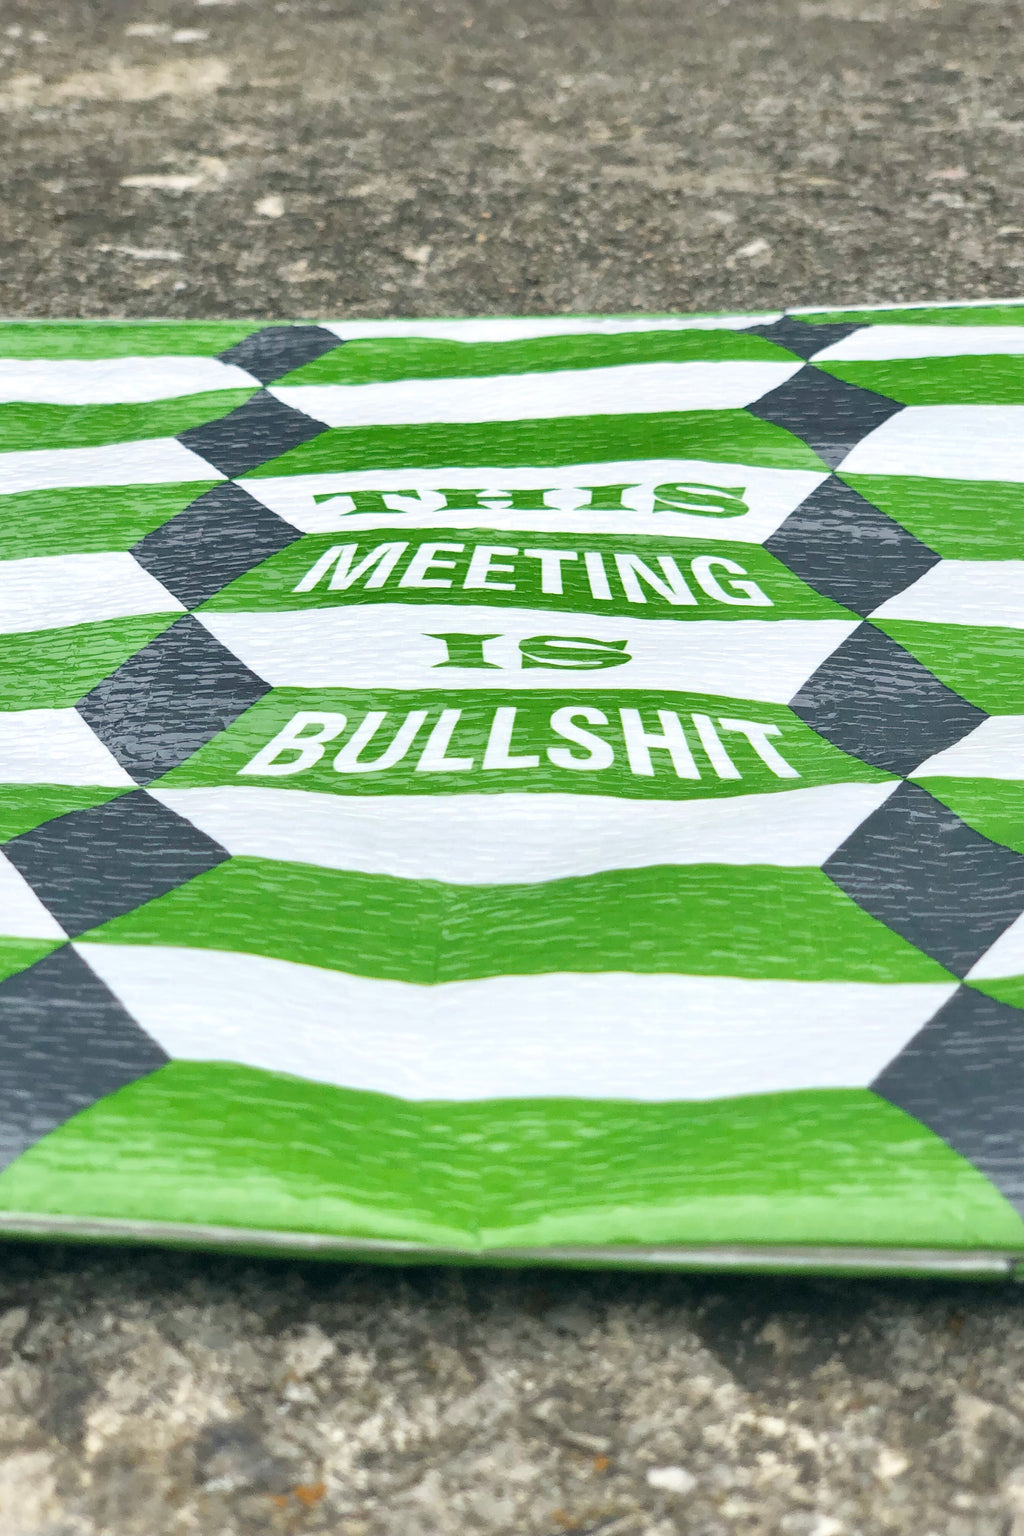 this meeting is bullshit pouch